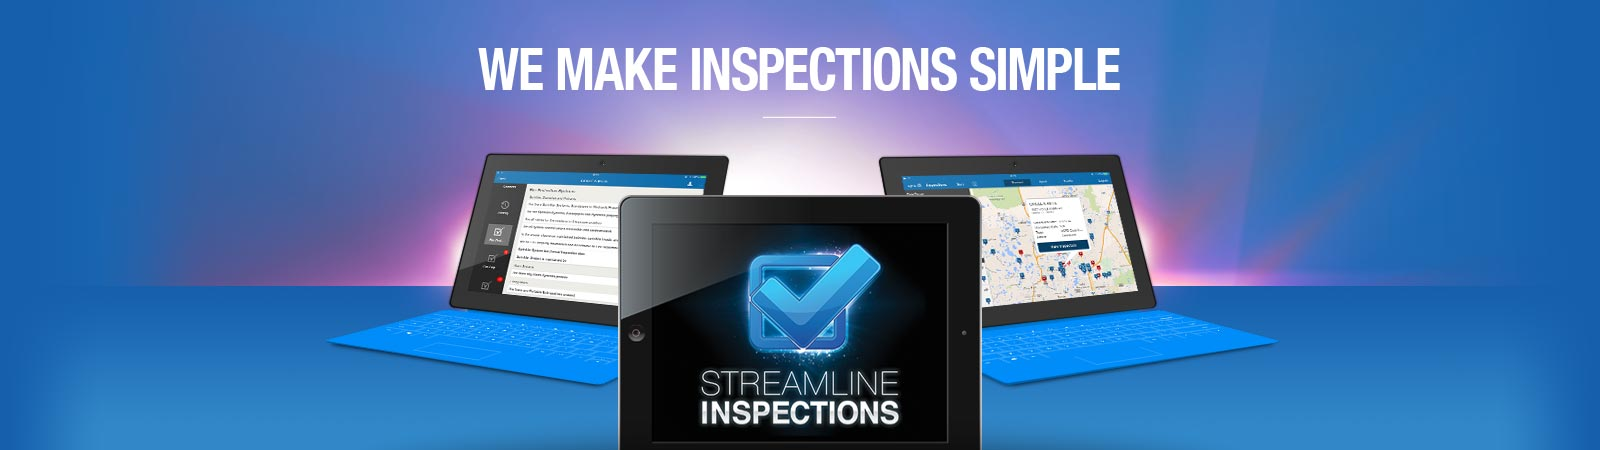 We make fire inspections simple.